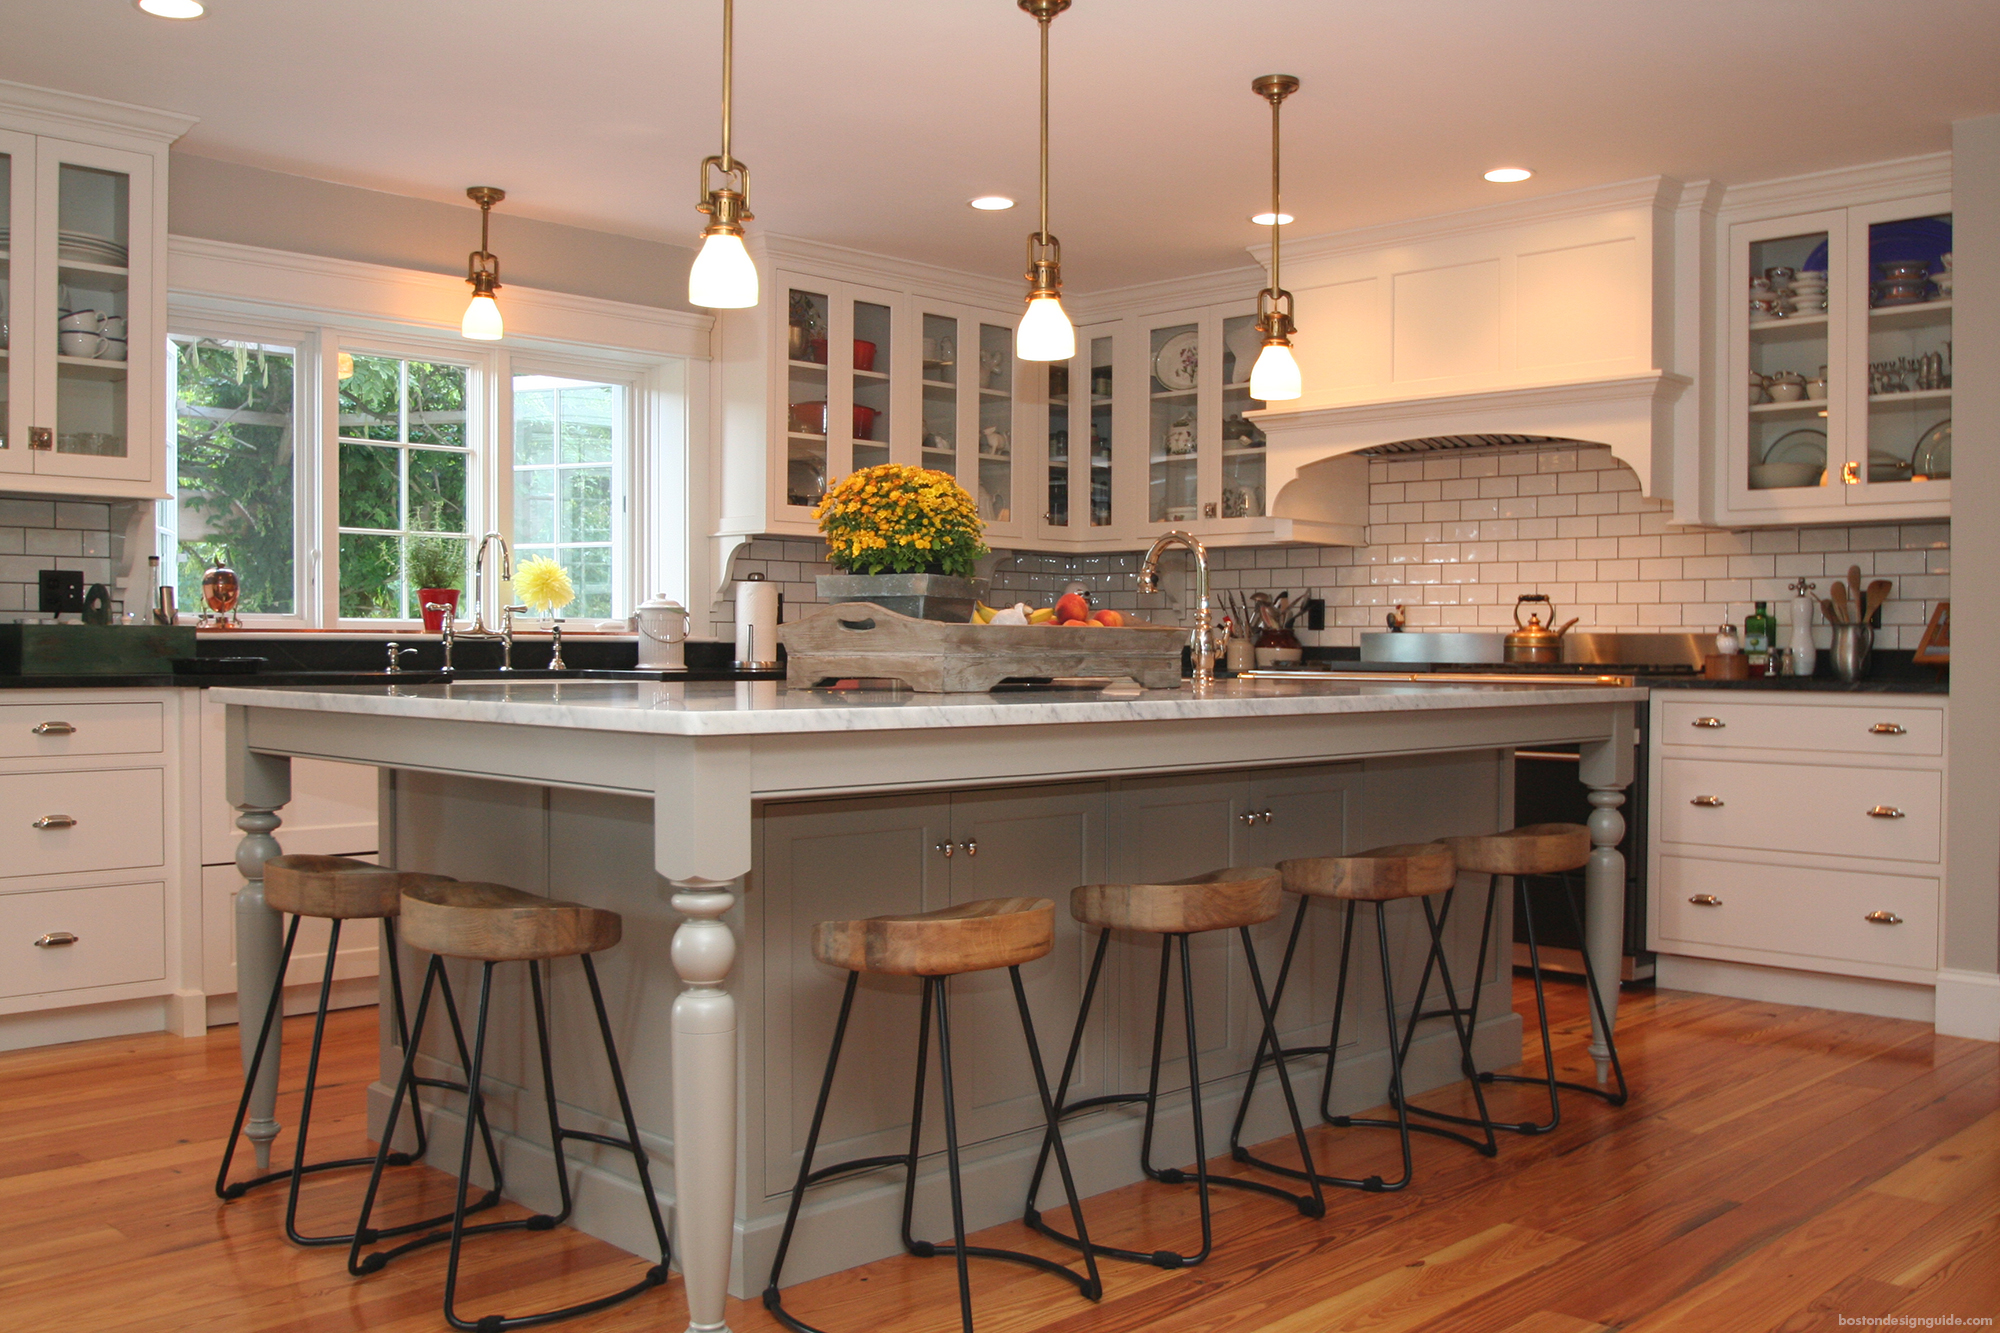 Kitchen cabinet refacing boston - Kitchen Cabinets Boston Faneuil Kitchen Cabinet Boston Design Guide